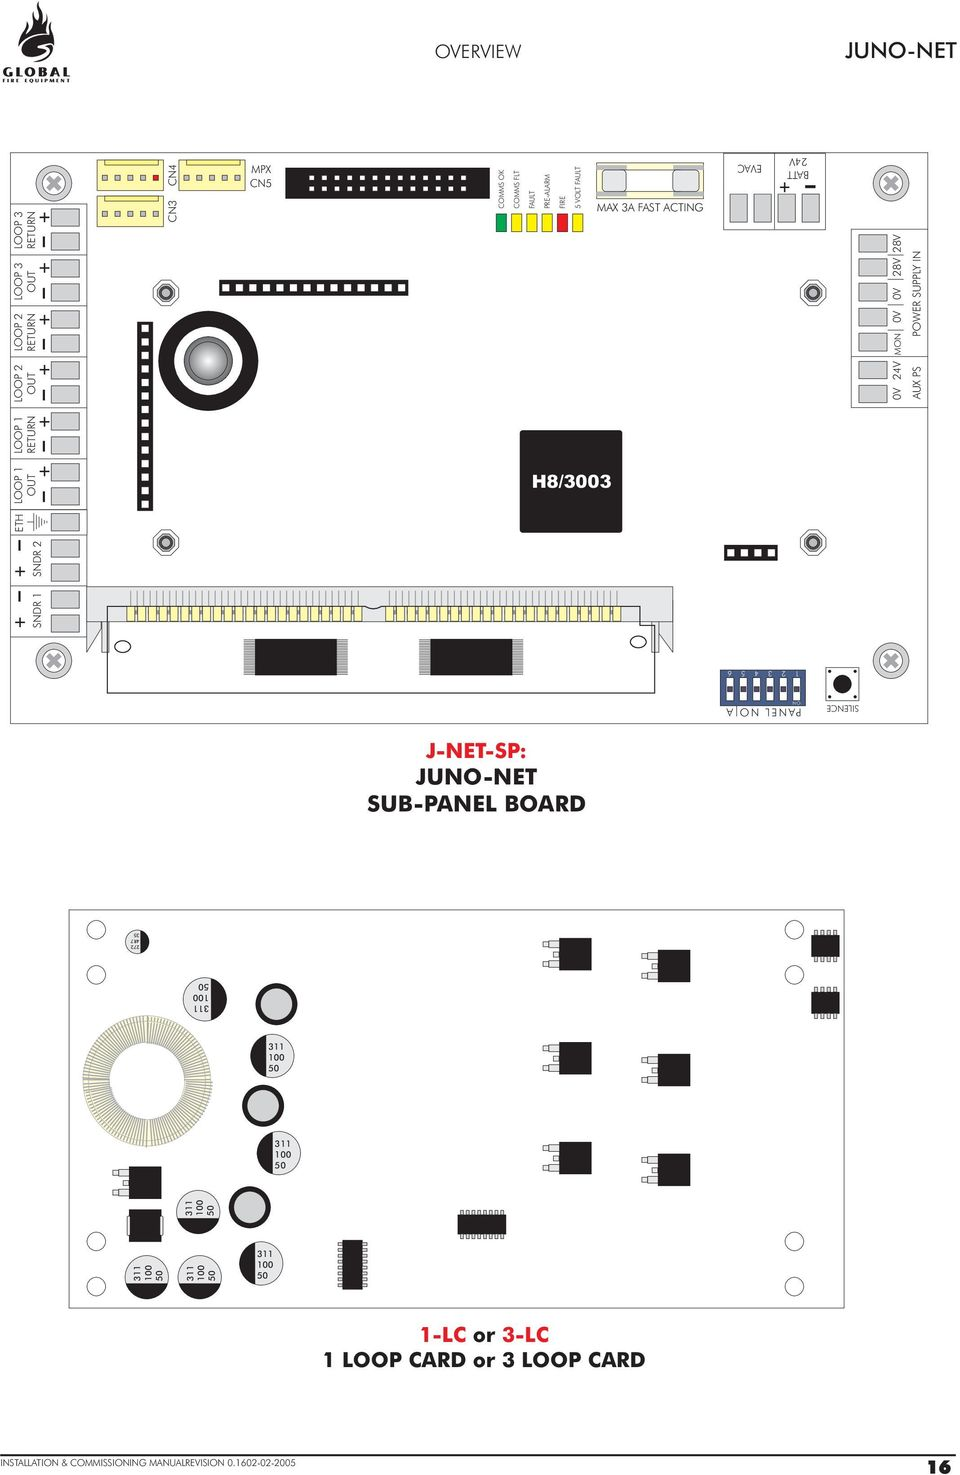 global fire equipment juno-net  fire alarm control panel installation  u0026 commissioning manual